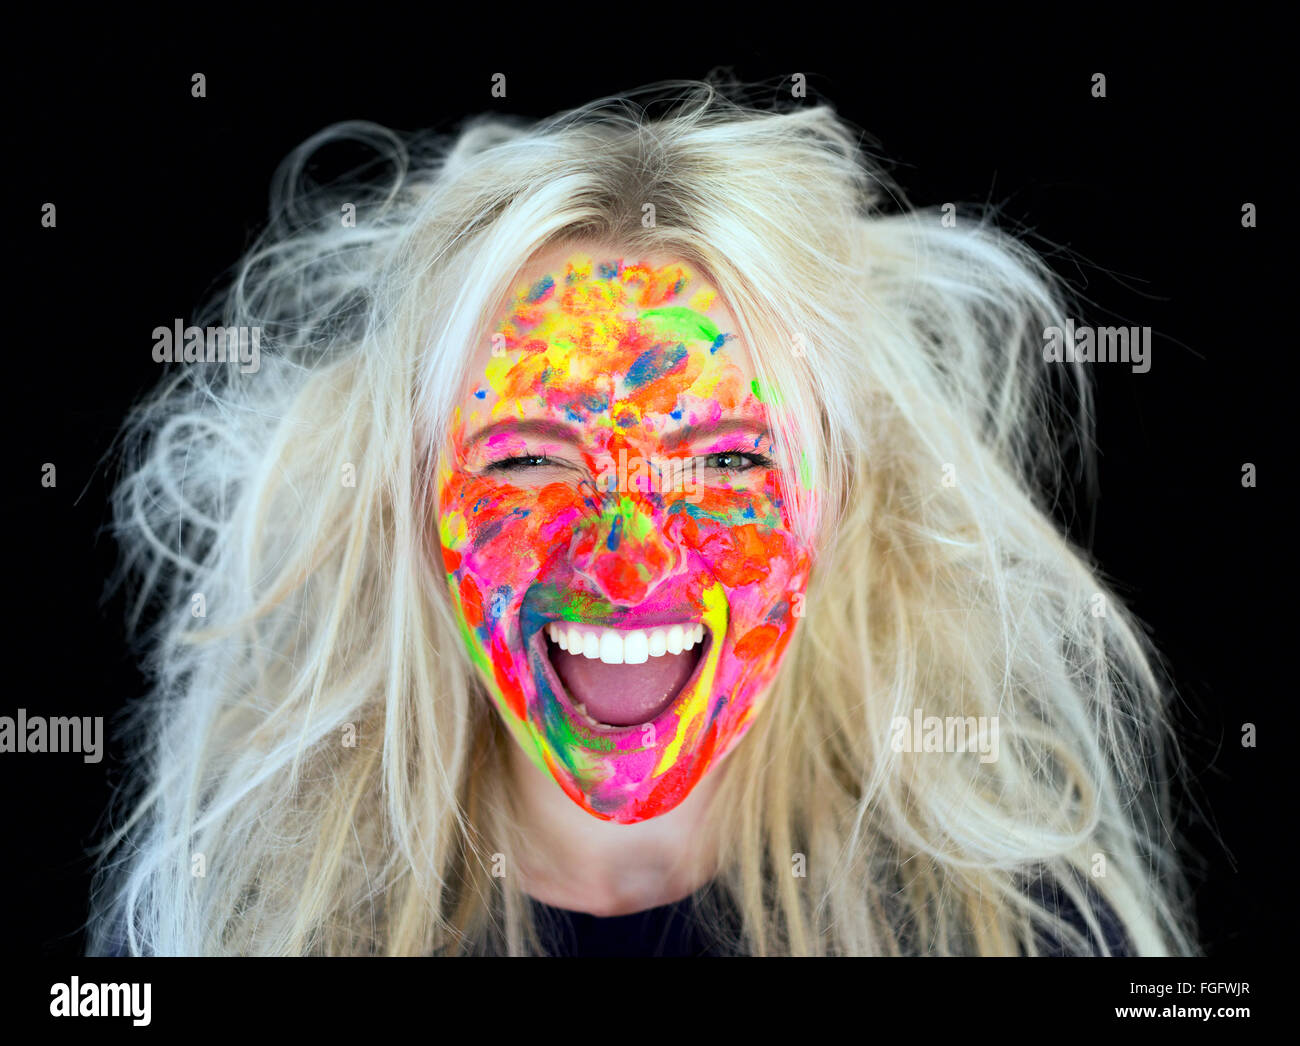 Woman with messy blonde hair with face covered in multi coloured paint laughing - Stock Image